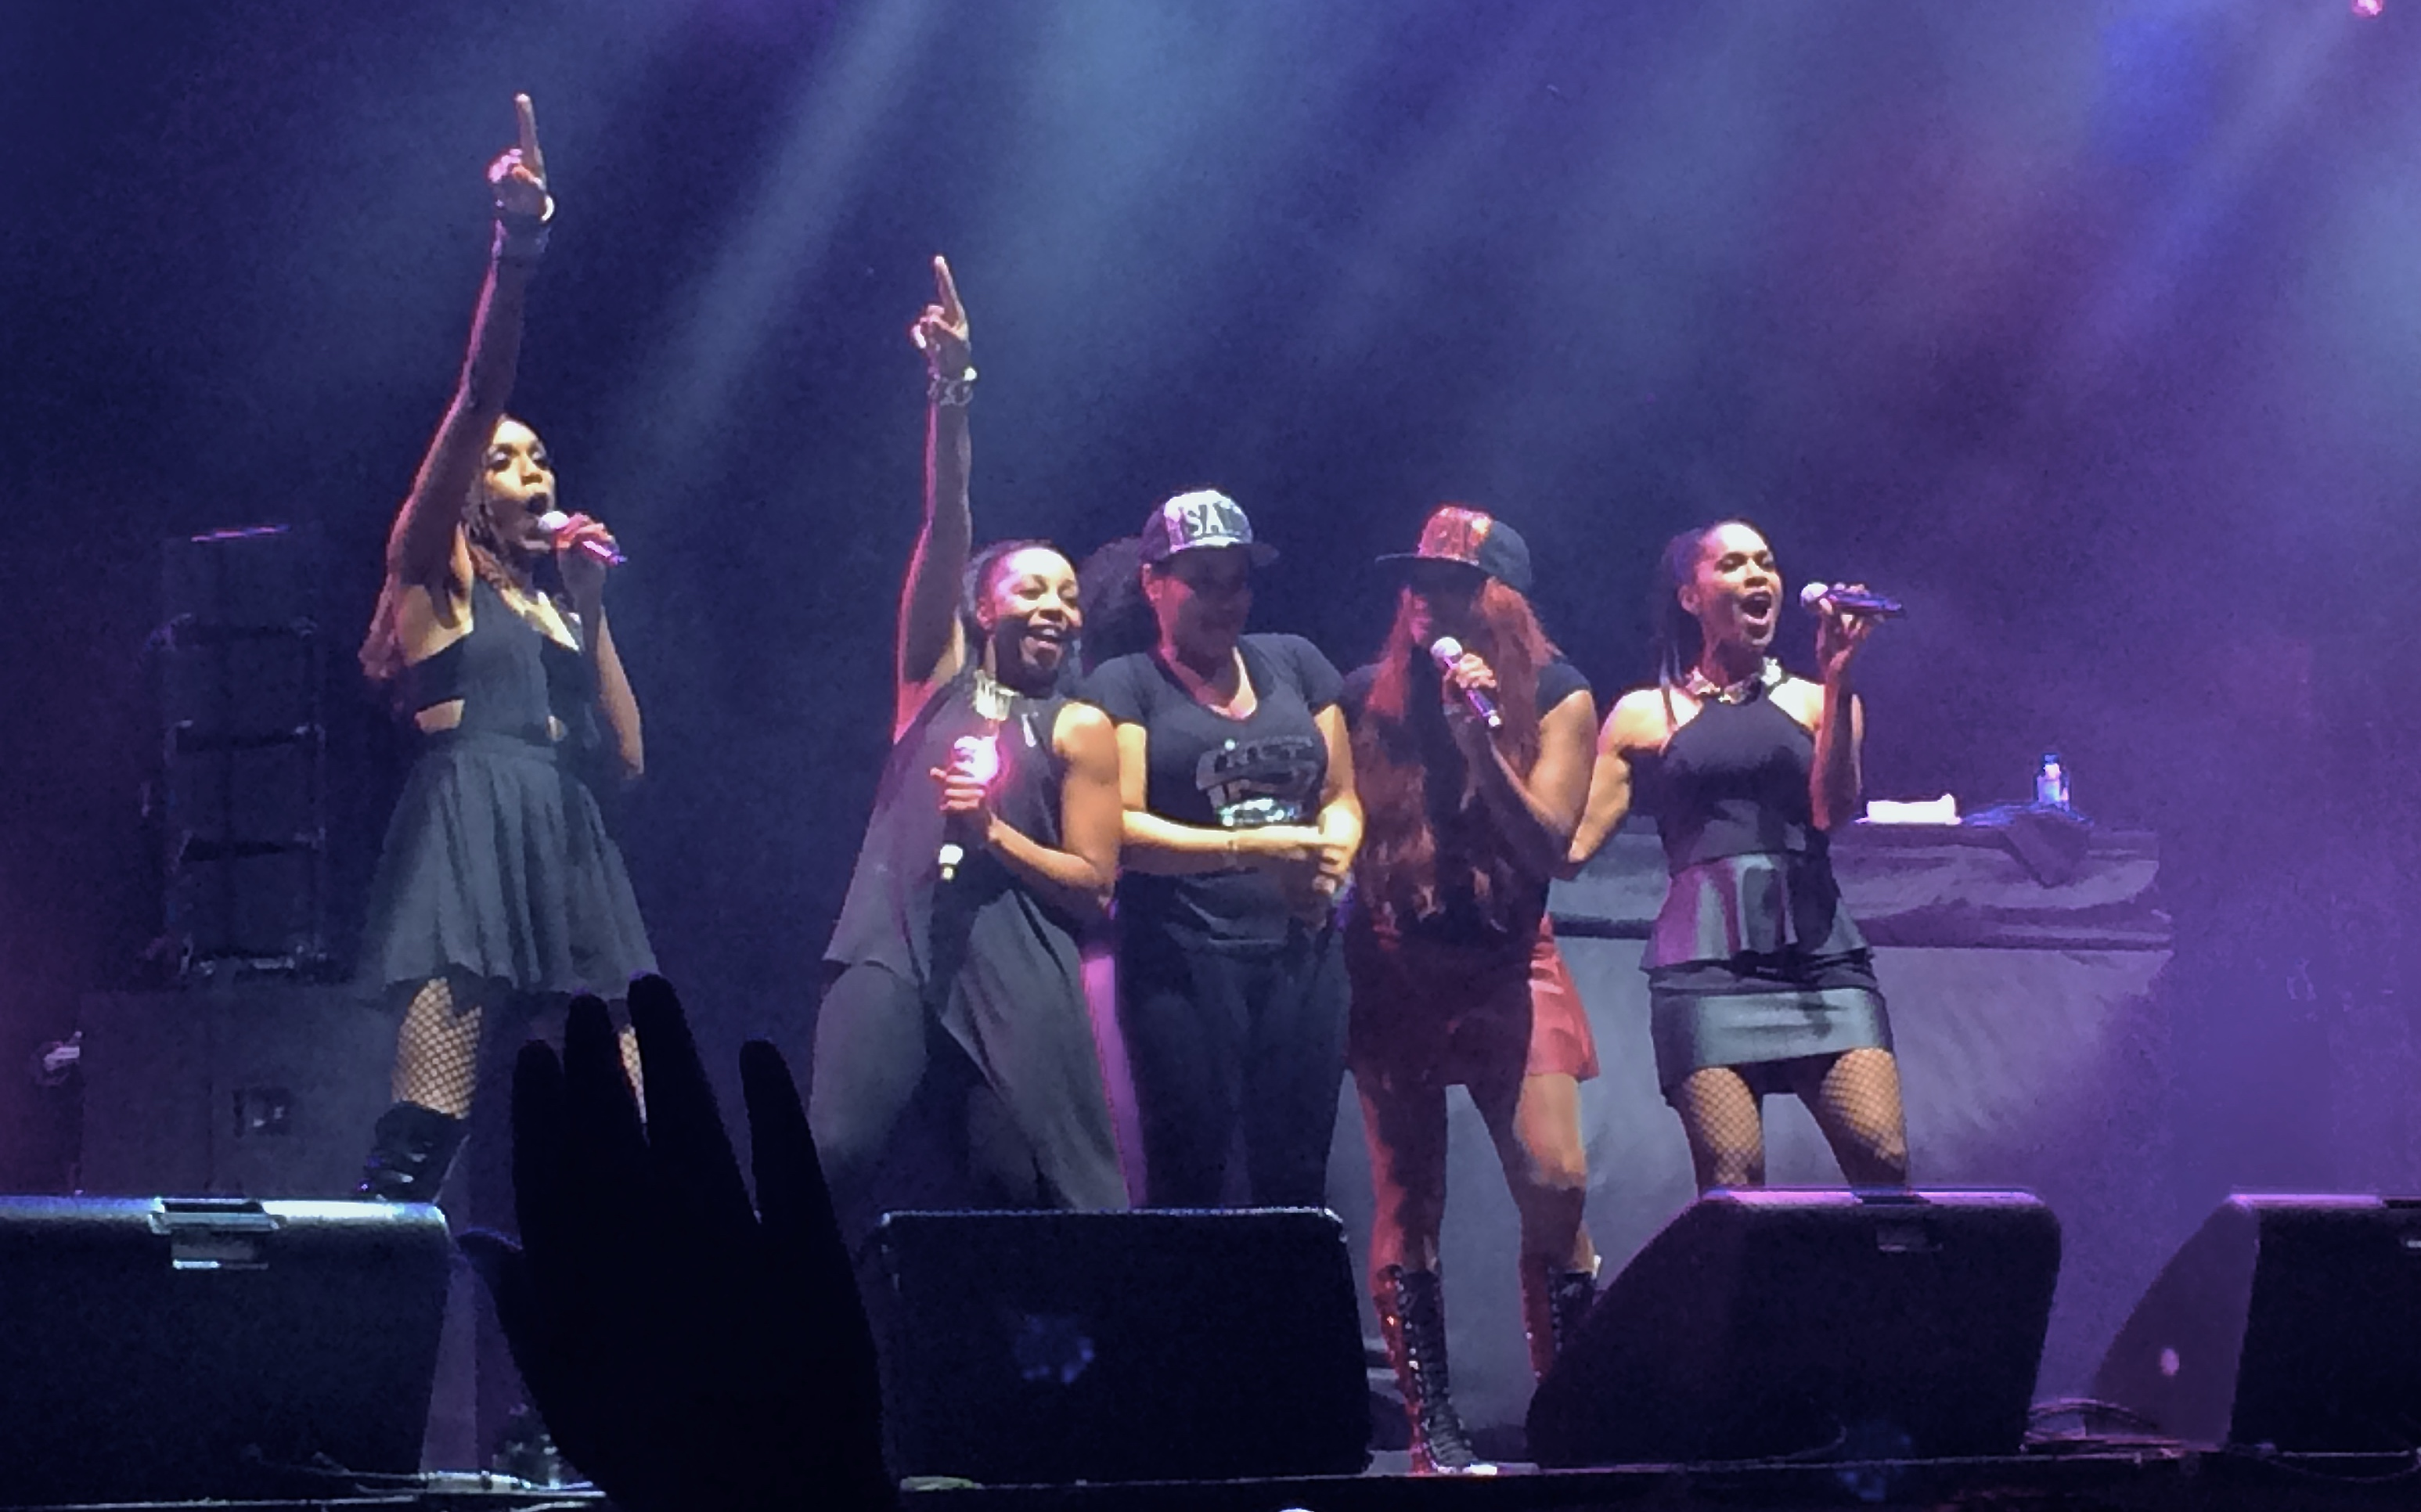 Salt-N-Pepa with En Vogue. Can you guess the song?